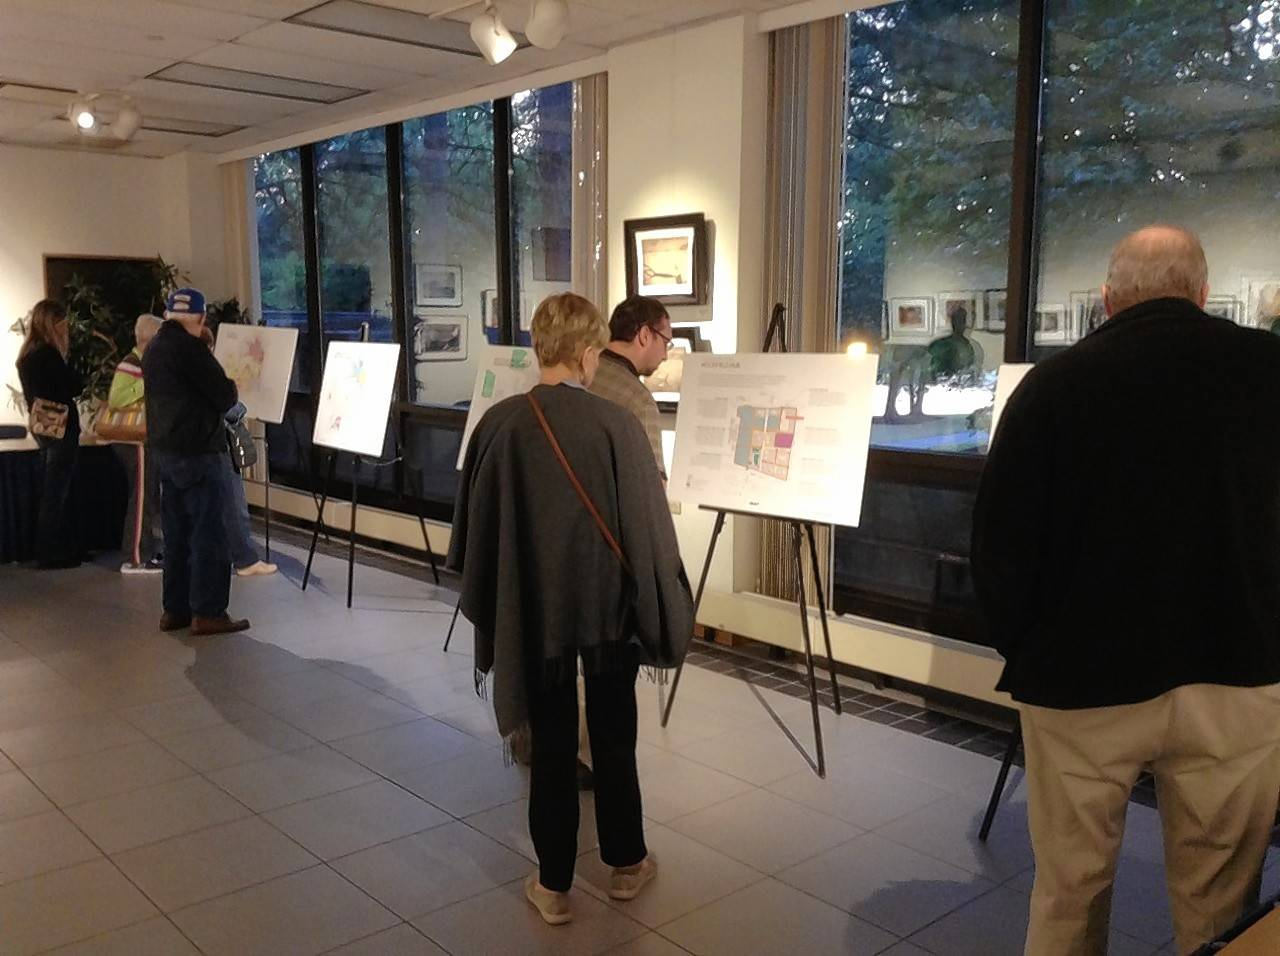 Schaumburg residents view maps and other materials on the draft revision of the village's comprehensive land-use plan Monday during an open house at the Al Larson Prairie Center for the Arts.